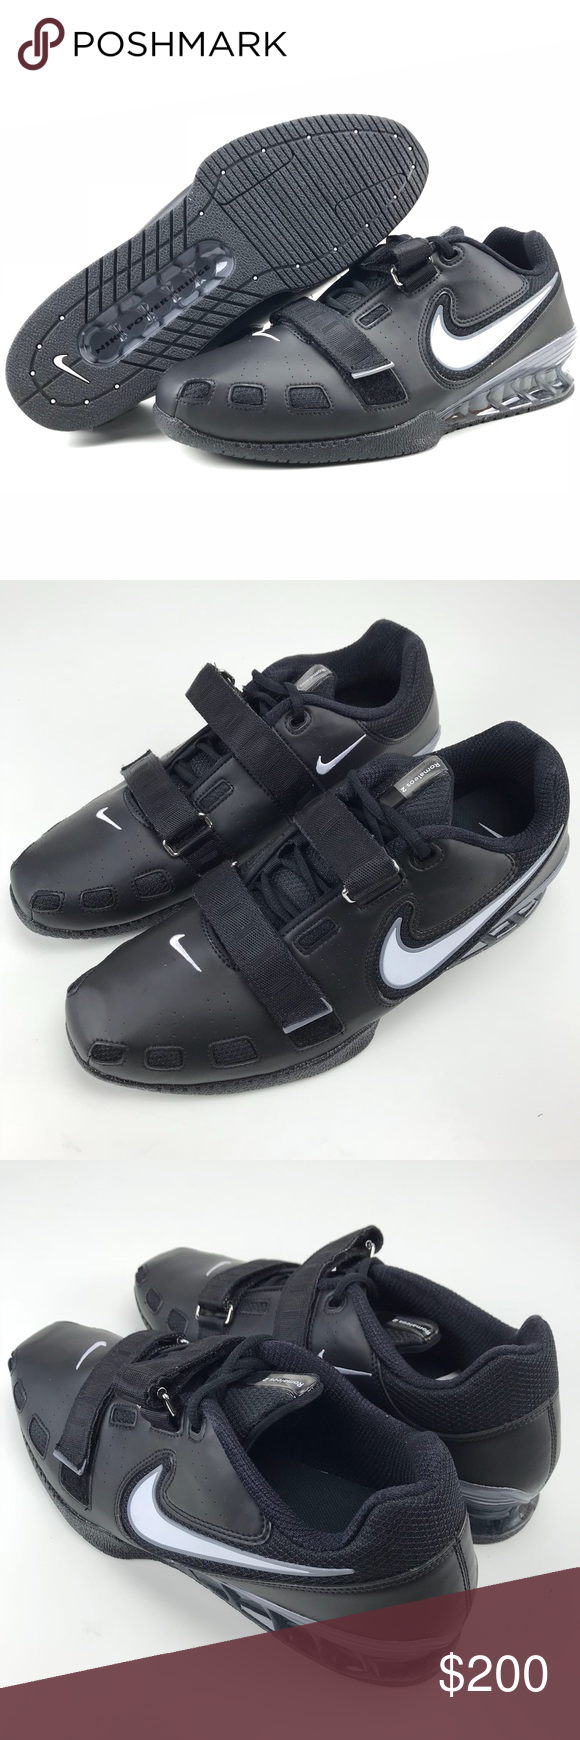 Nike Romaleos 2 Weightlifting Shoes Nike Romaleos 2 Weightlifting Shoes  Size 14 Men s Black White Cool Grey 476927 Brand new shoes 028578d370ae